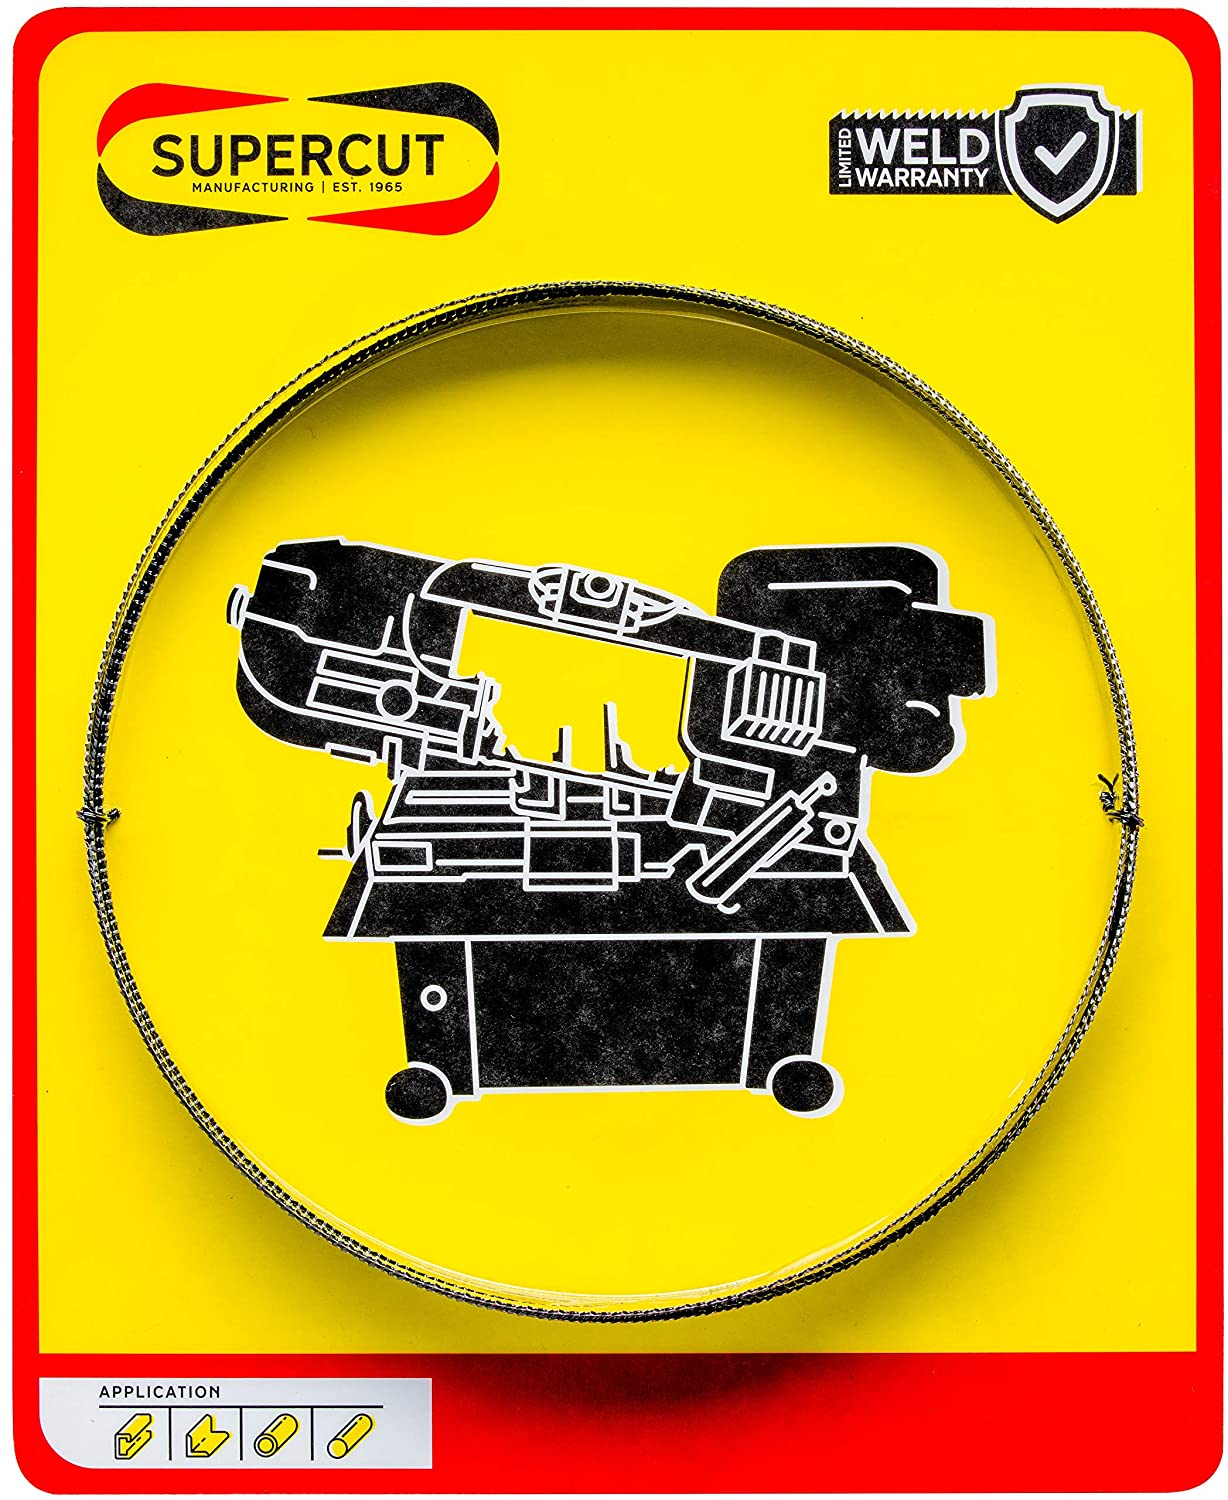 Supercut Band Saw Blade Made Free shipping anywhere in the nation in The 4-inch X USA Selling .03 3 93-inch